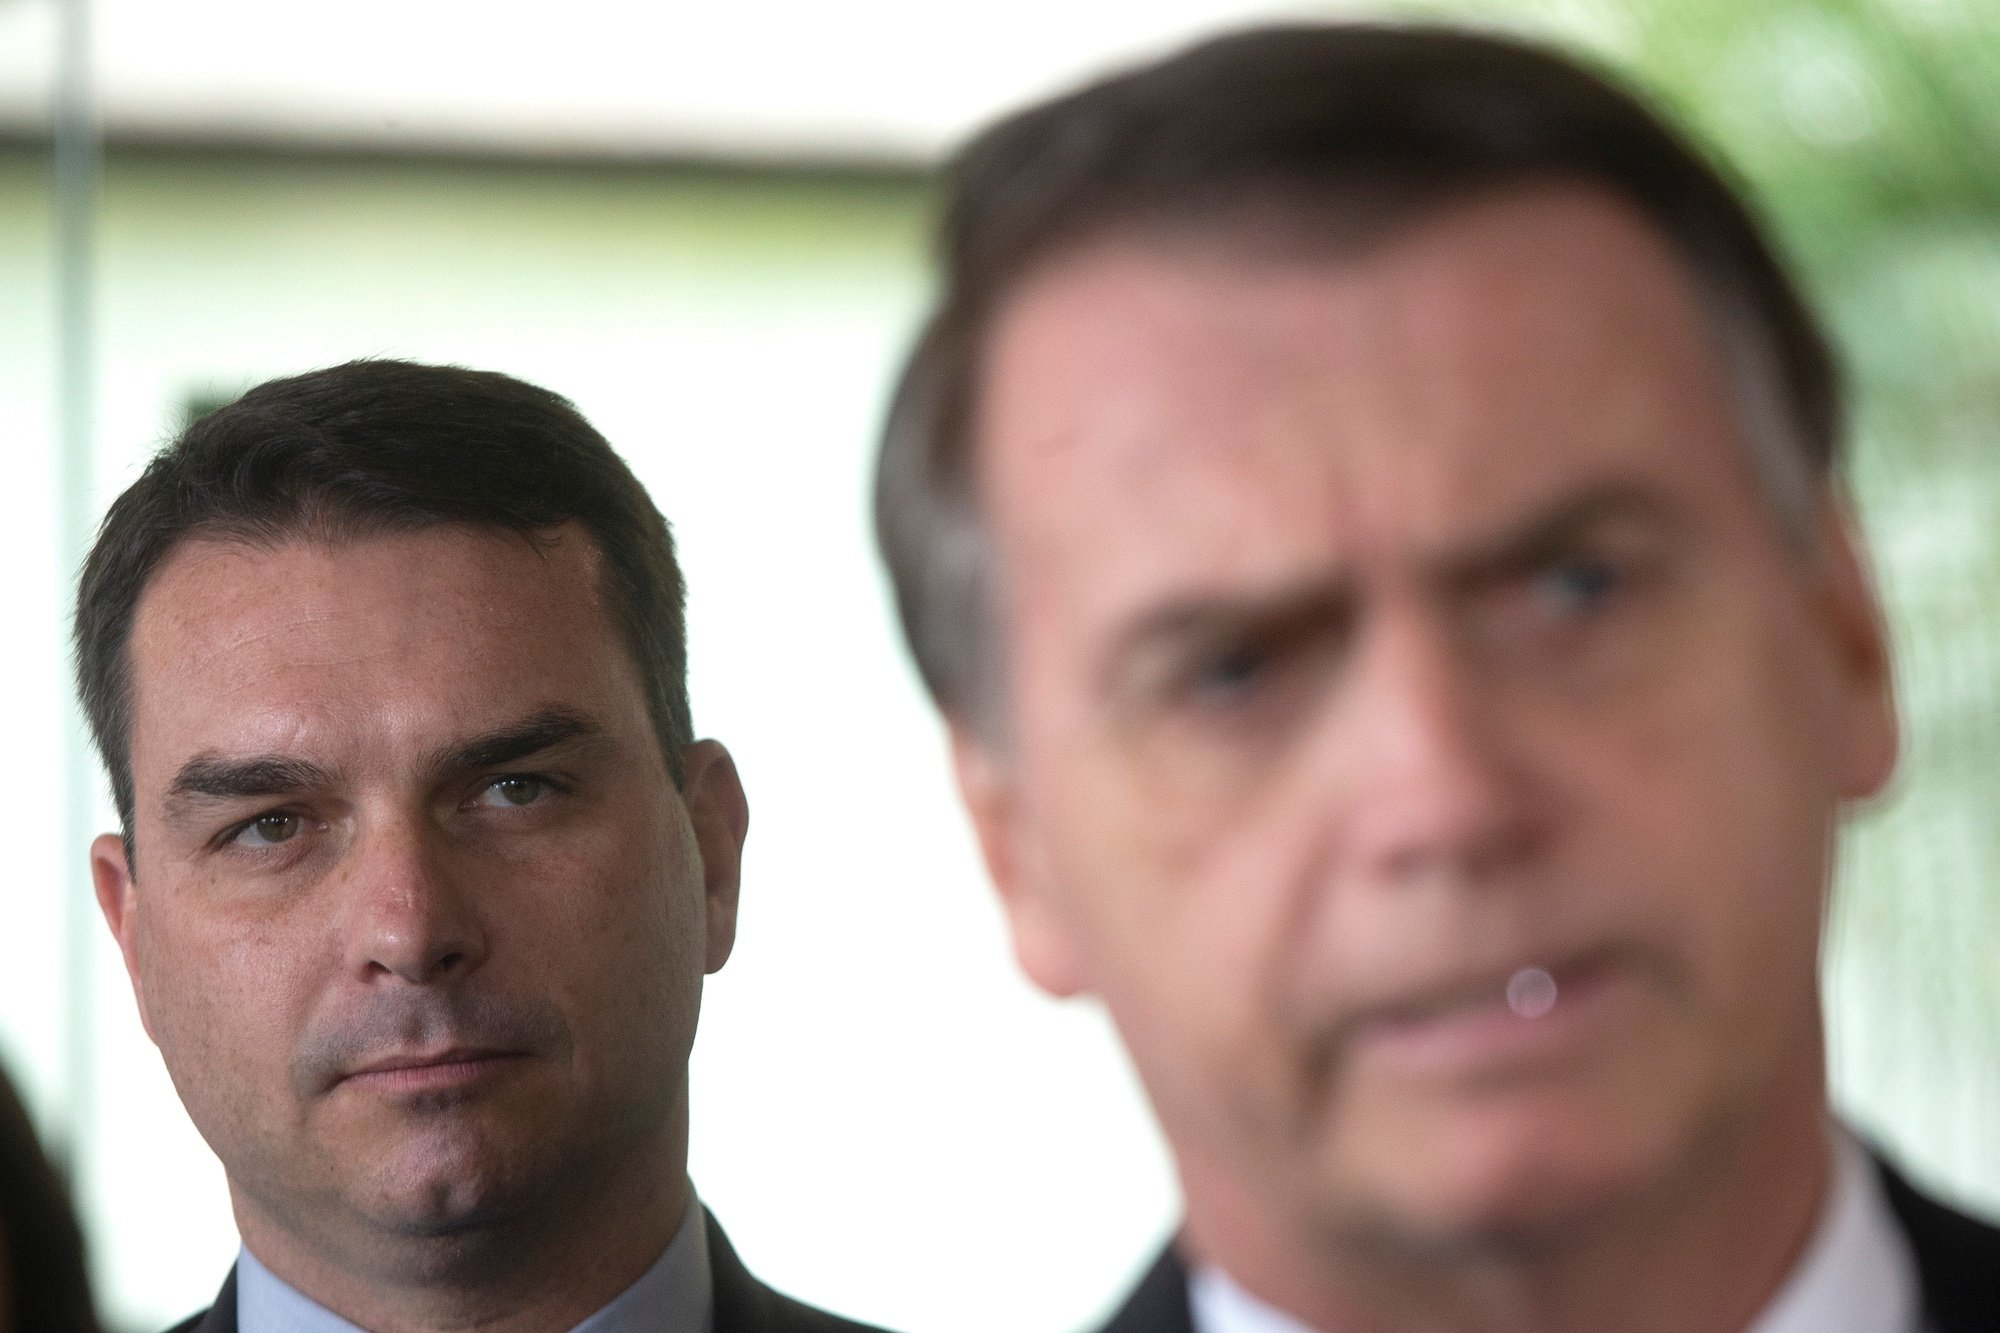 epa08628612 (FILE) - Then Brazilian President-elect Jair Bolsonaro (R) and his son, then elected senator Flavio Bolsonaro (L), arrive at the Supreme Court of Justice for a press conference in Brasilia, Brazil, 07 November 2018 (reissued 27 August 2020). According to the senator's office statement, the eldest son of Brazilian President Jair Bolsonaro, Senator Flavio Bolsonaro, said he has tested positive for the new coronavirus.  EPA/Joedson Alves *** Local Caption *** 54757503